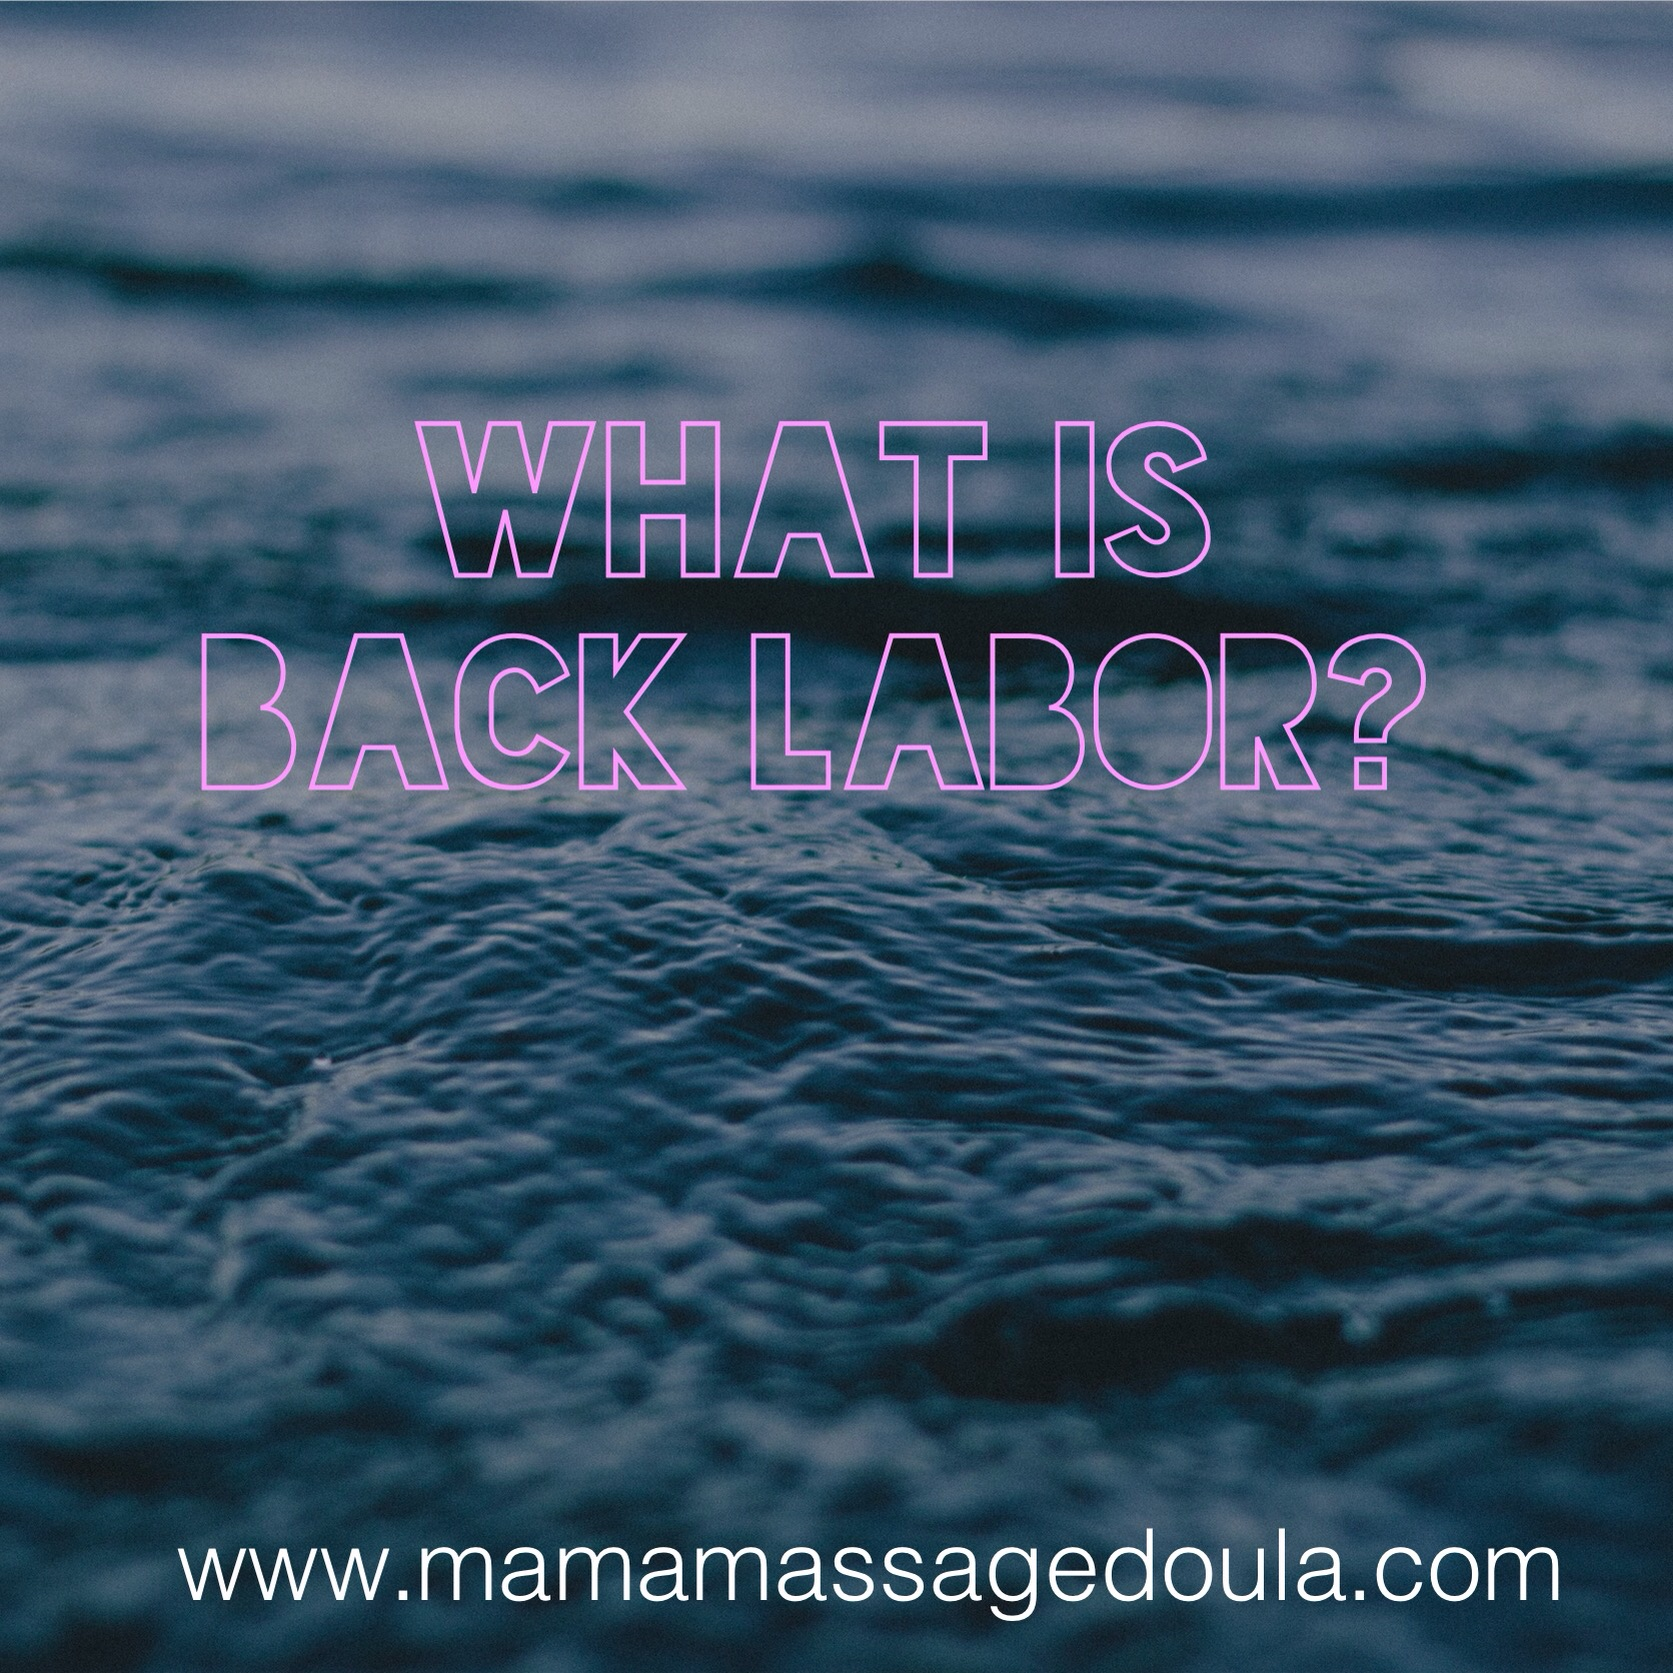 Spoiler alert: Being Submerged in Warm water is excellent relief from back labor